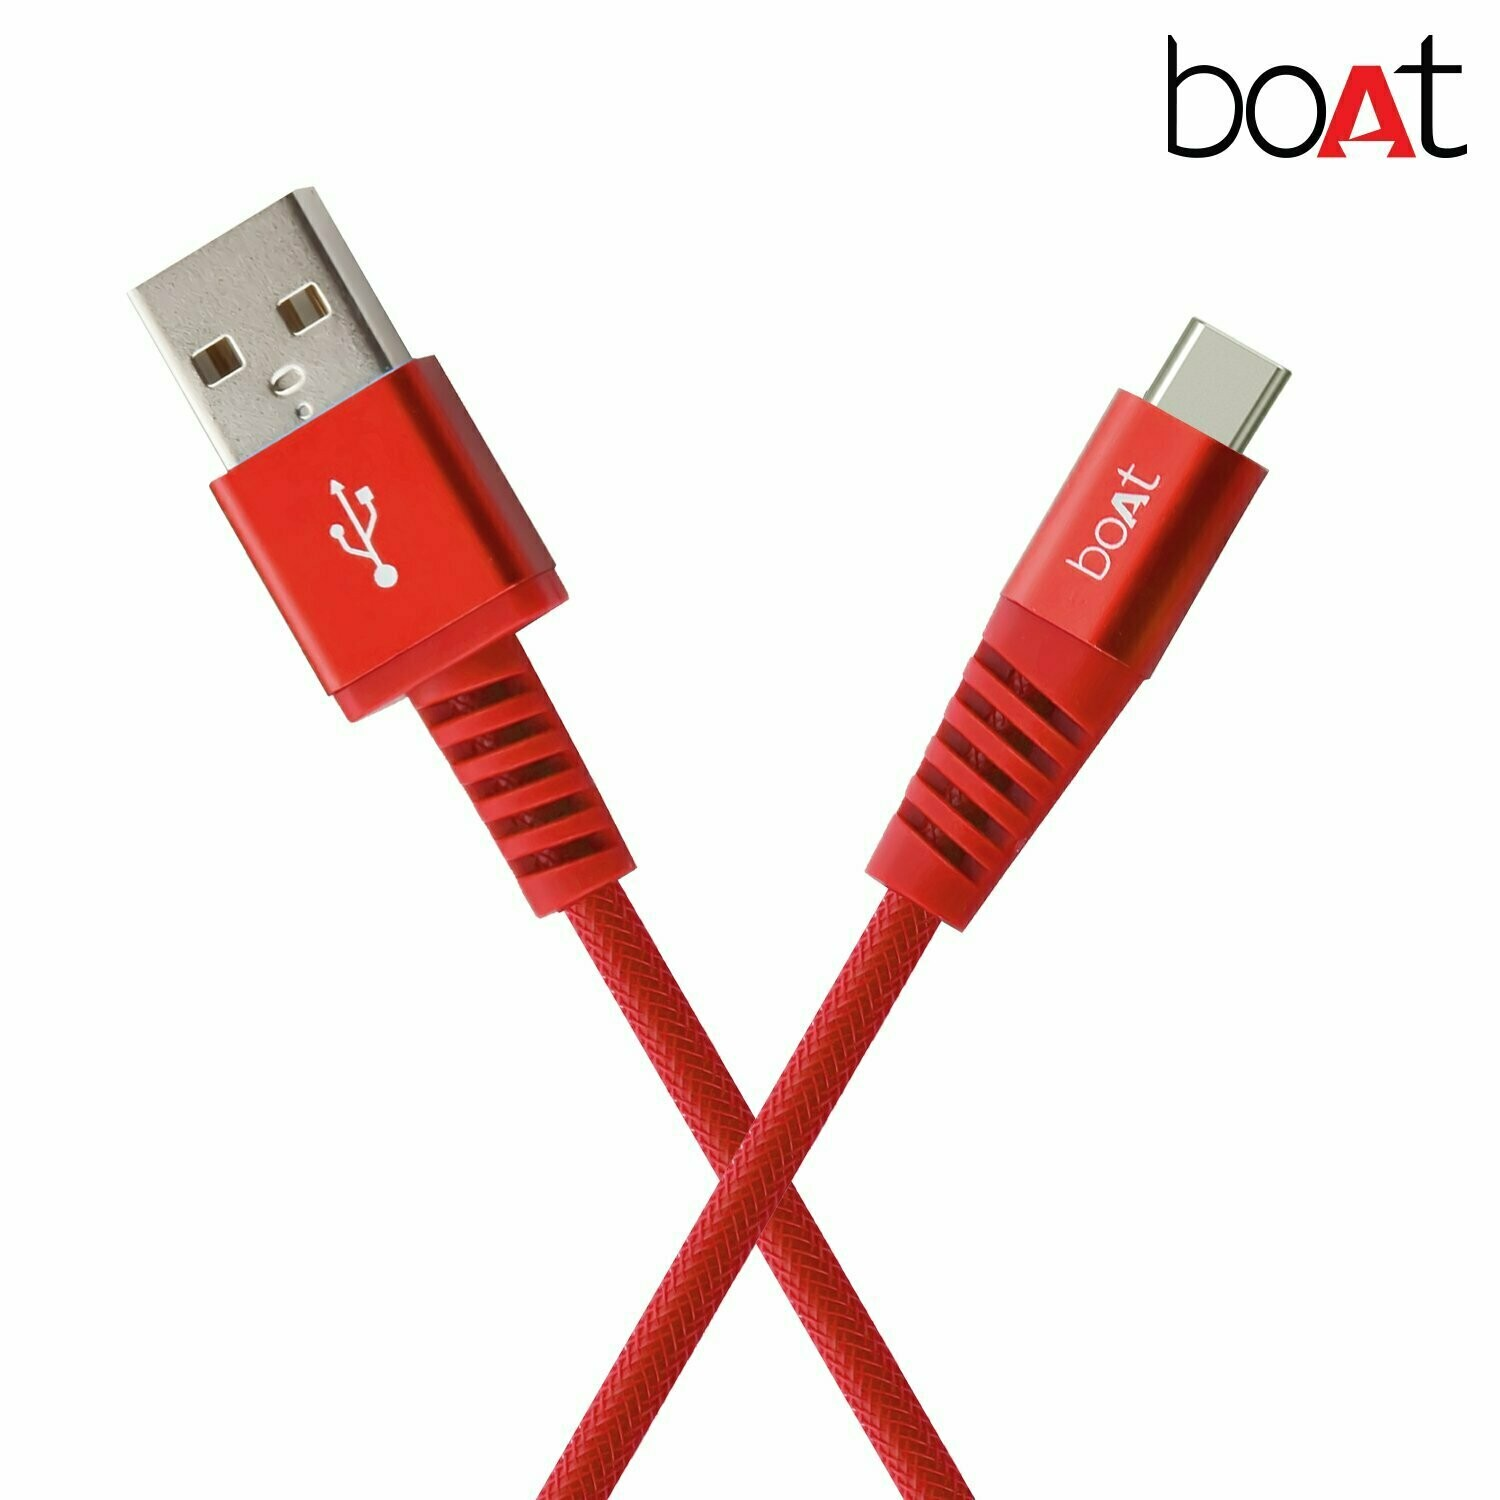 boAt para-Armour Type-C Cable - 1.5m, Red